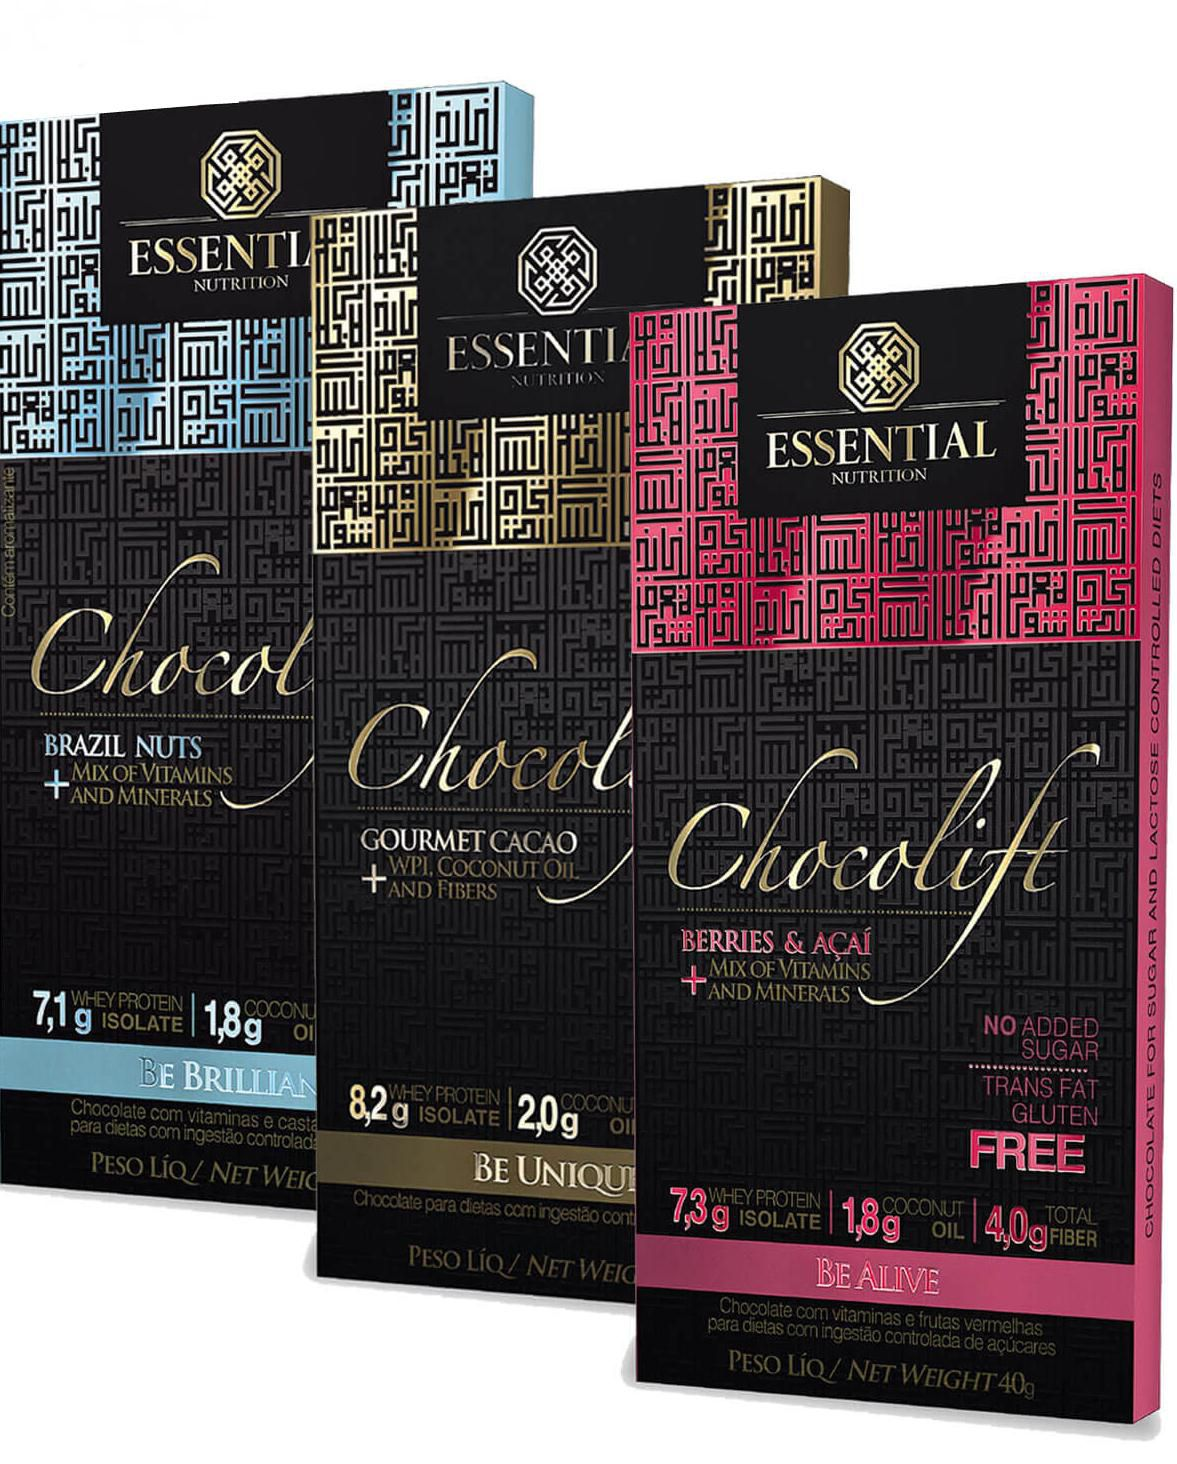 3x Chocolift 40g - Essential Nutrition